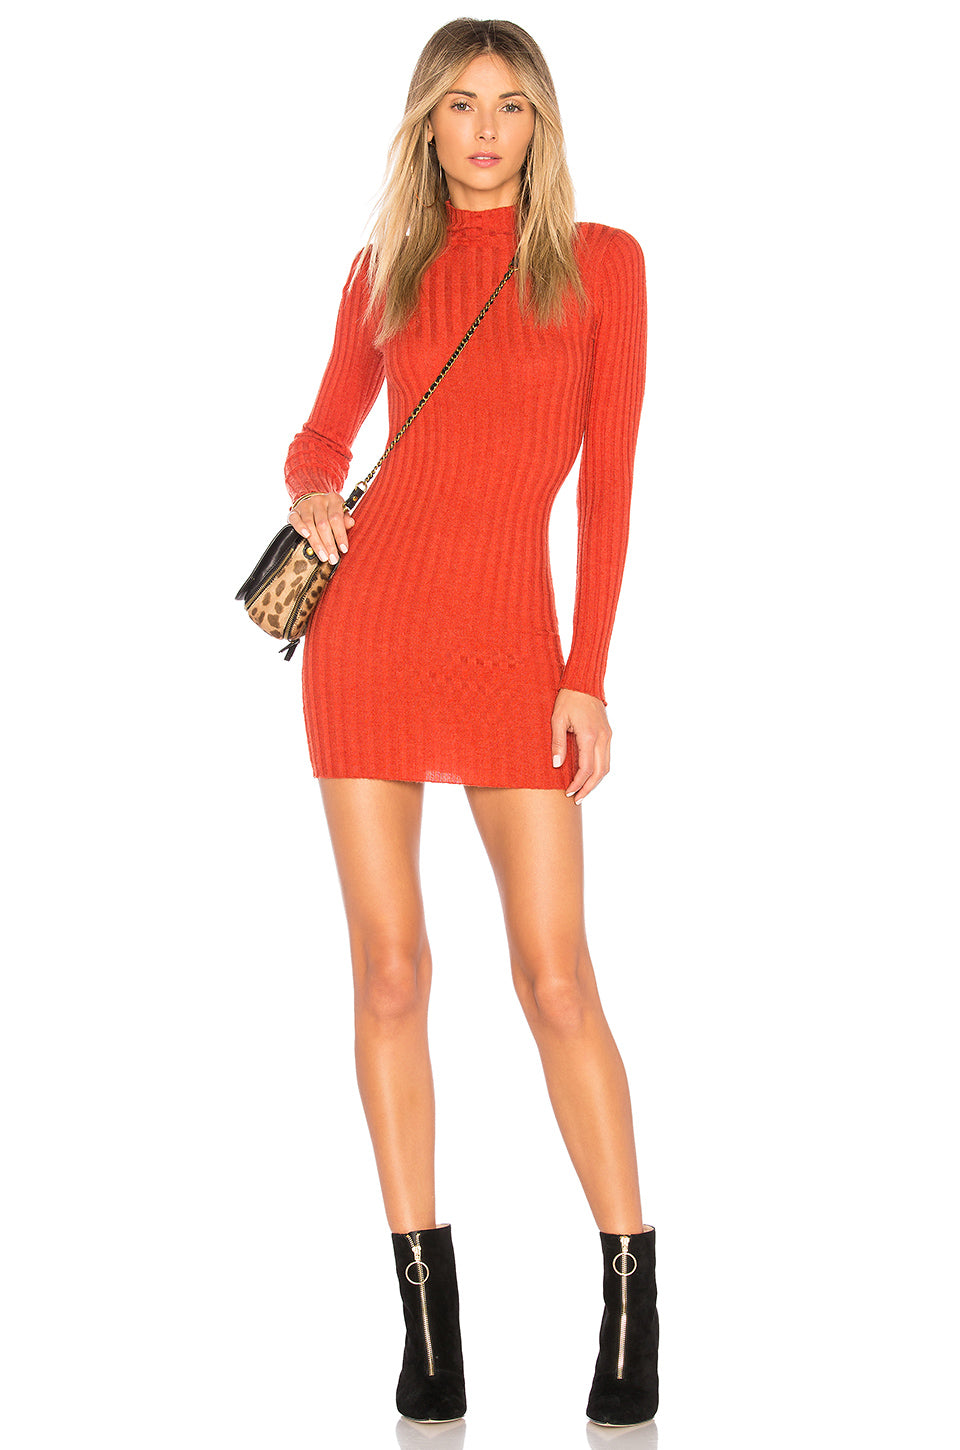 Be Fierce Mini Dress in Neon Orange